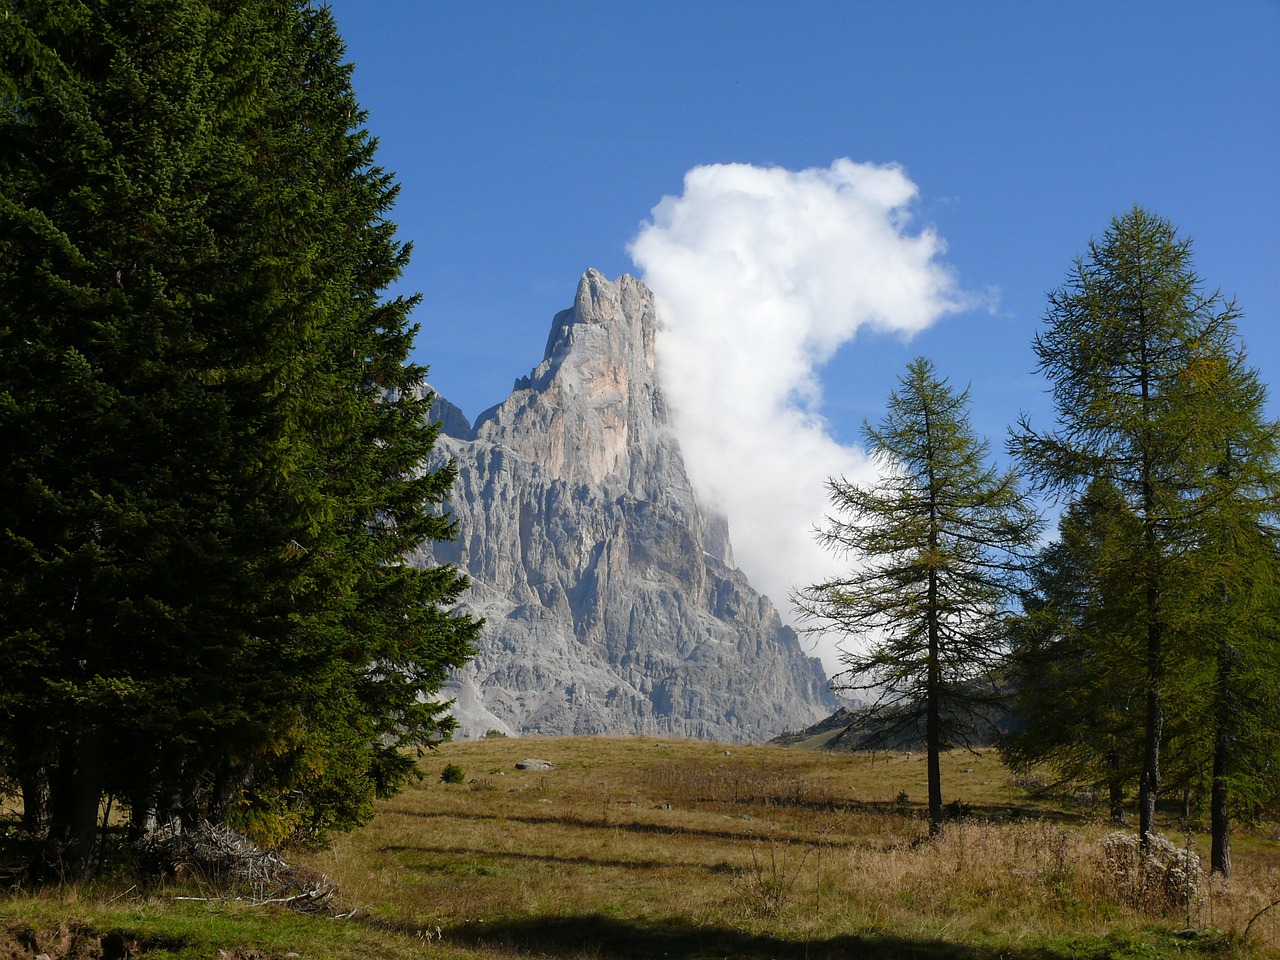 dolomites mountains rock free photo